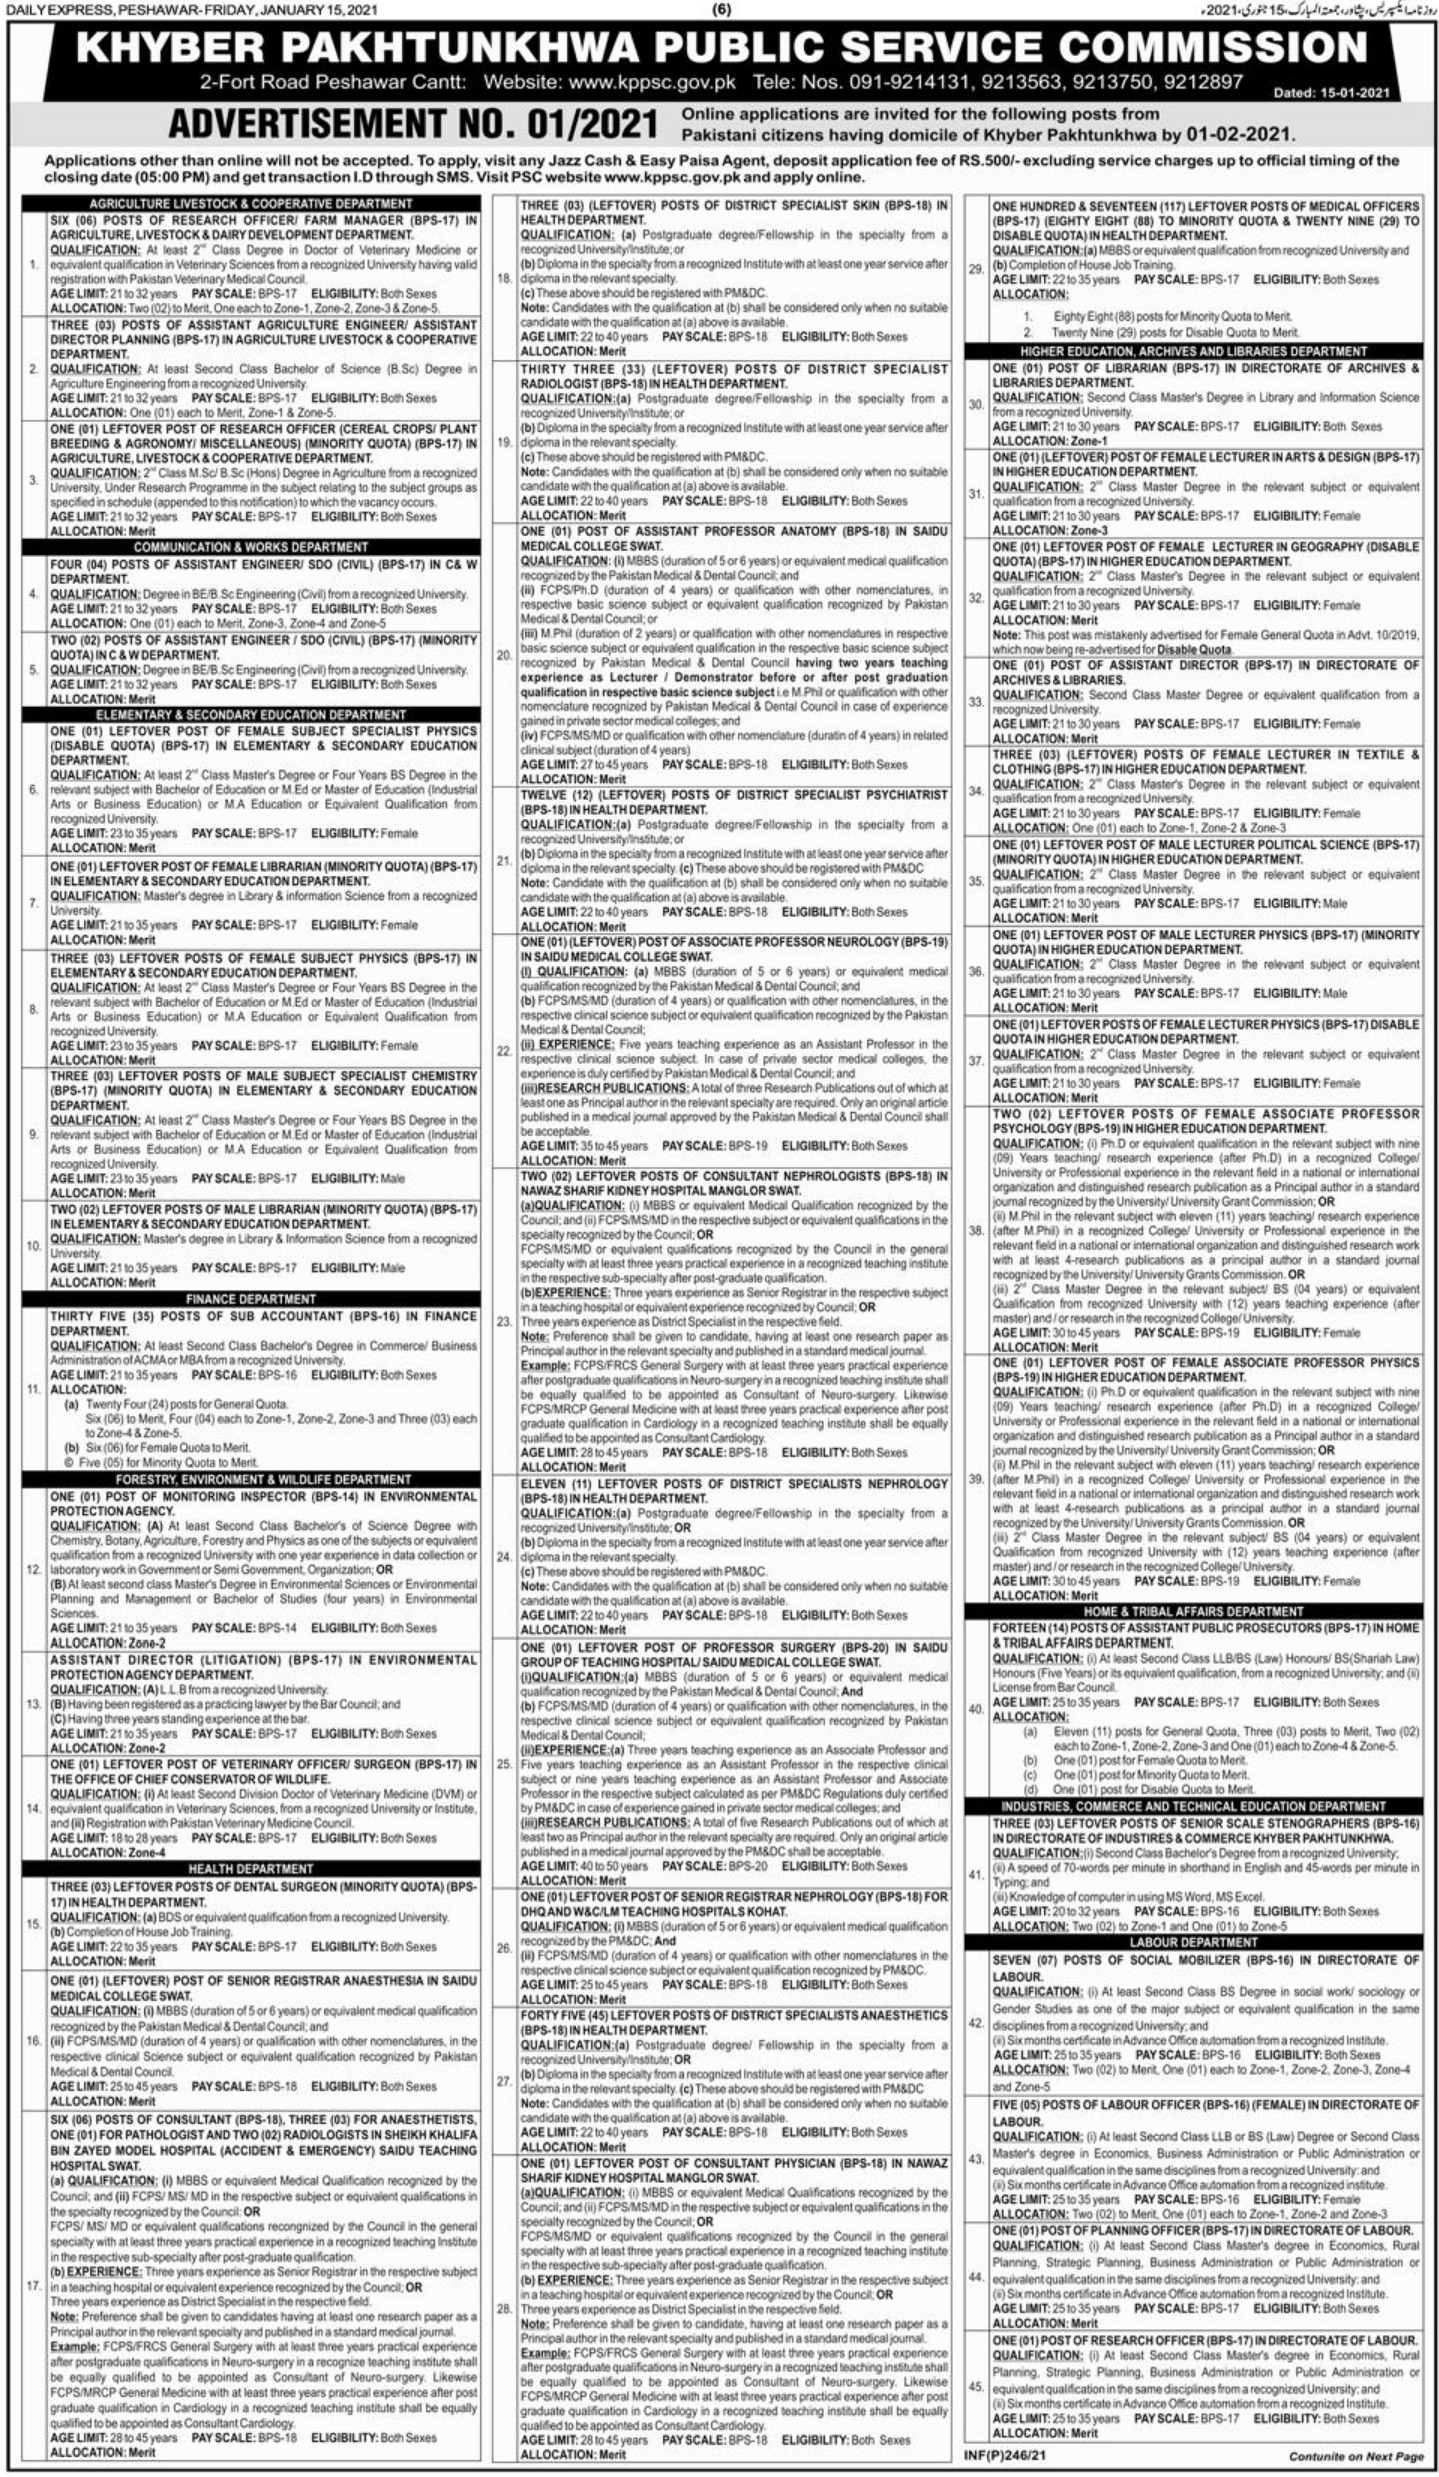 Khyber Pakhtunkhwa Public Service Commission KPPSC Jobs January 2021